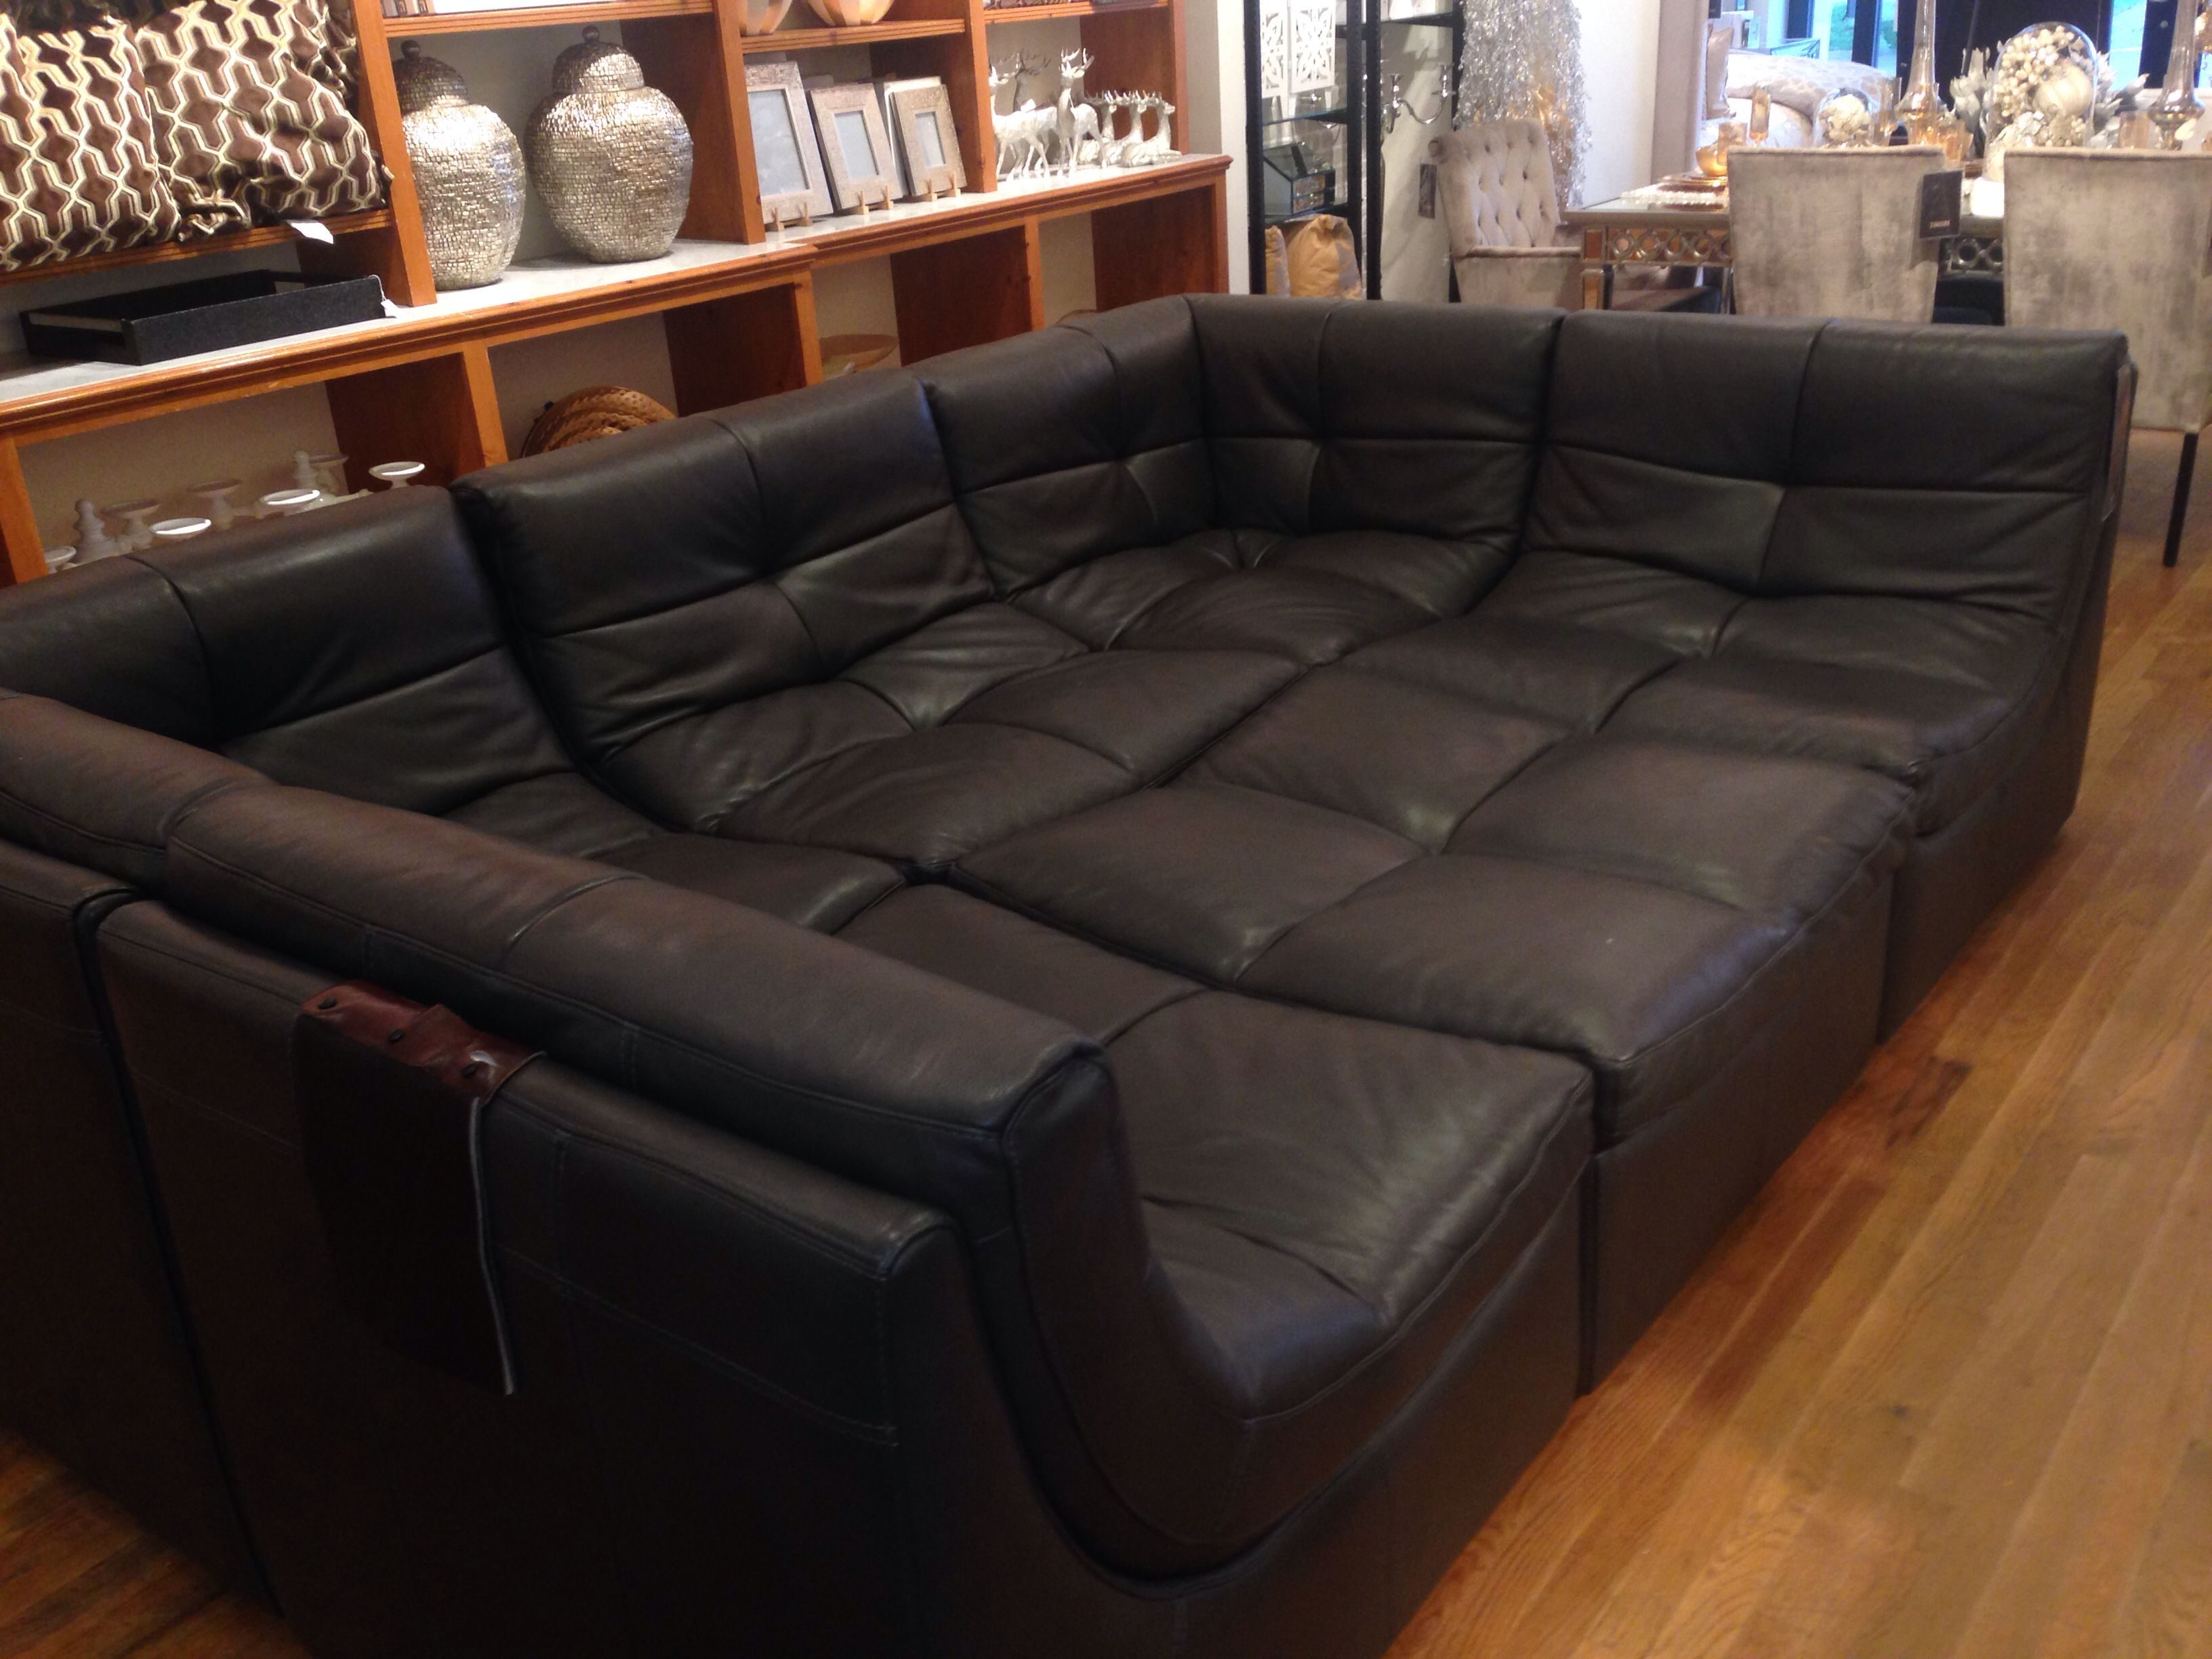 Large Sofas Large Couch For My Place Pinterest Movie Rooms